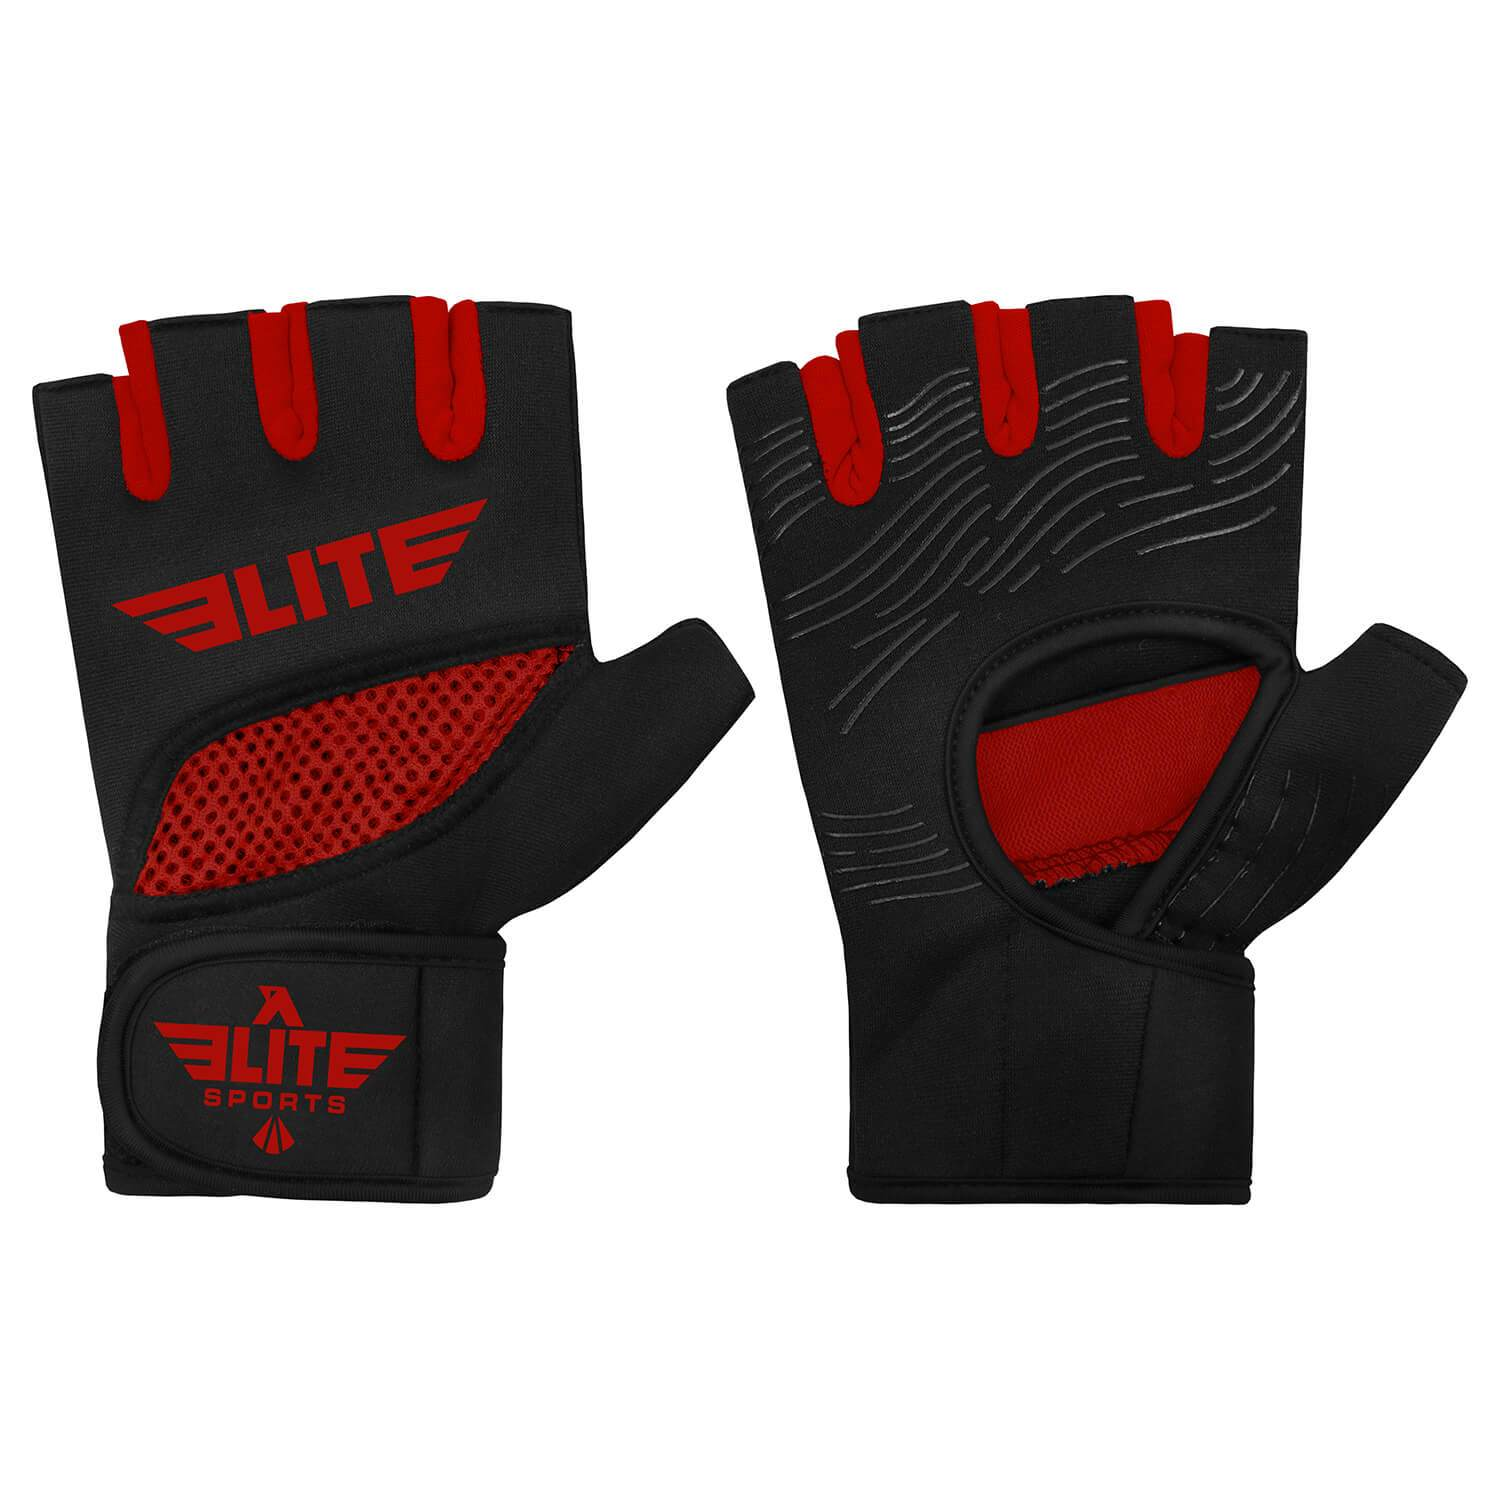 Elite Sports Black/Red Cross Boxing Gel Hand Wraps